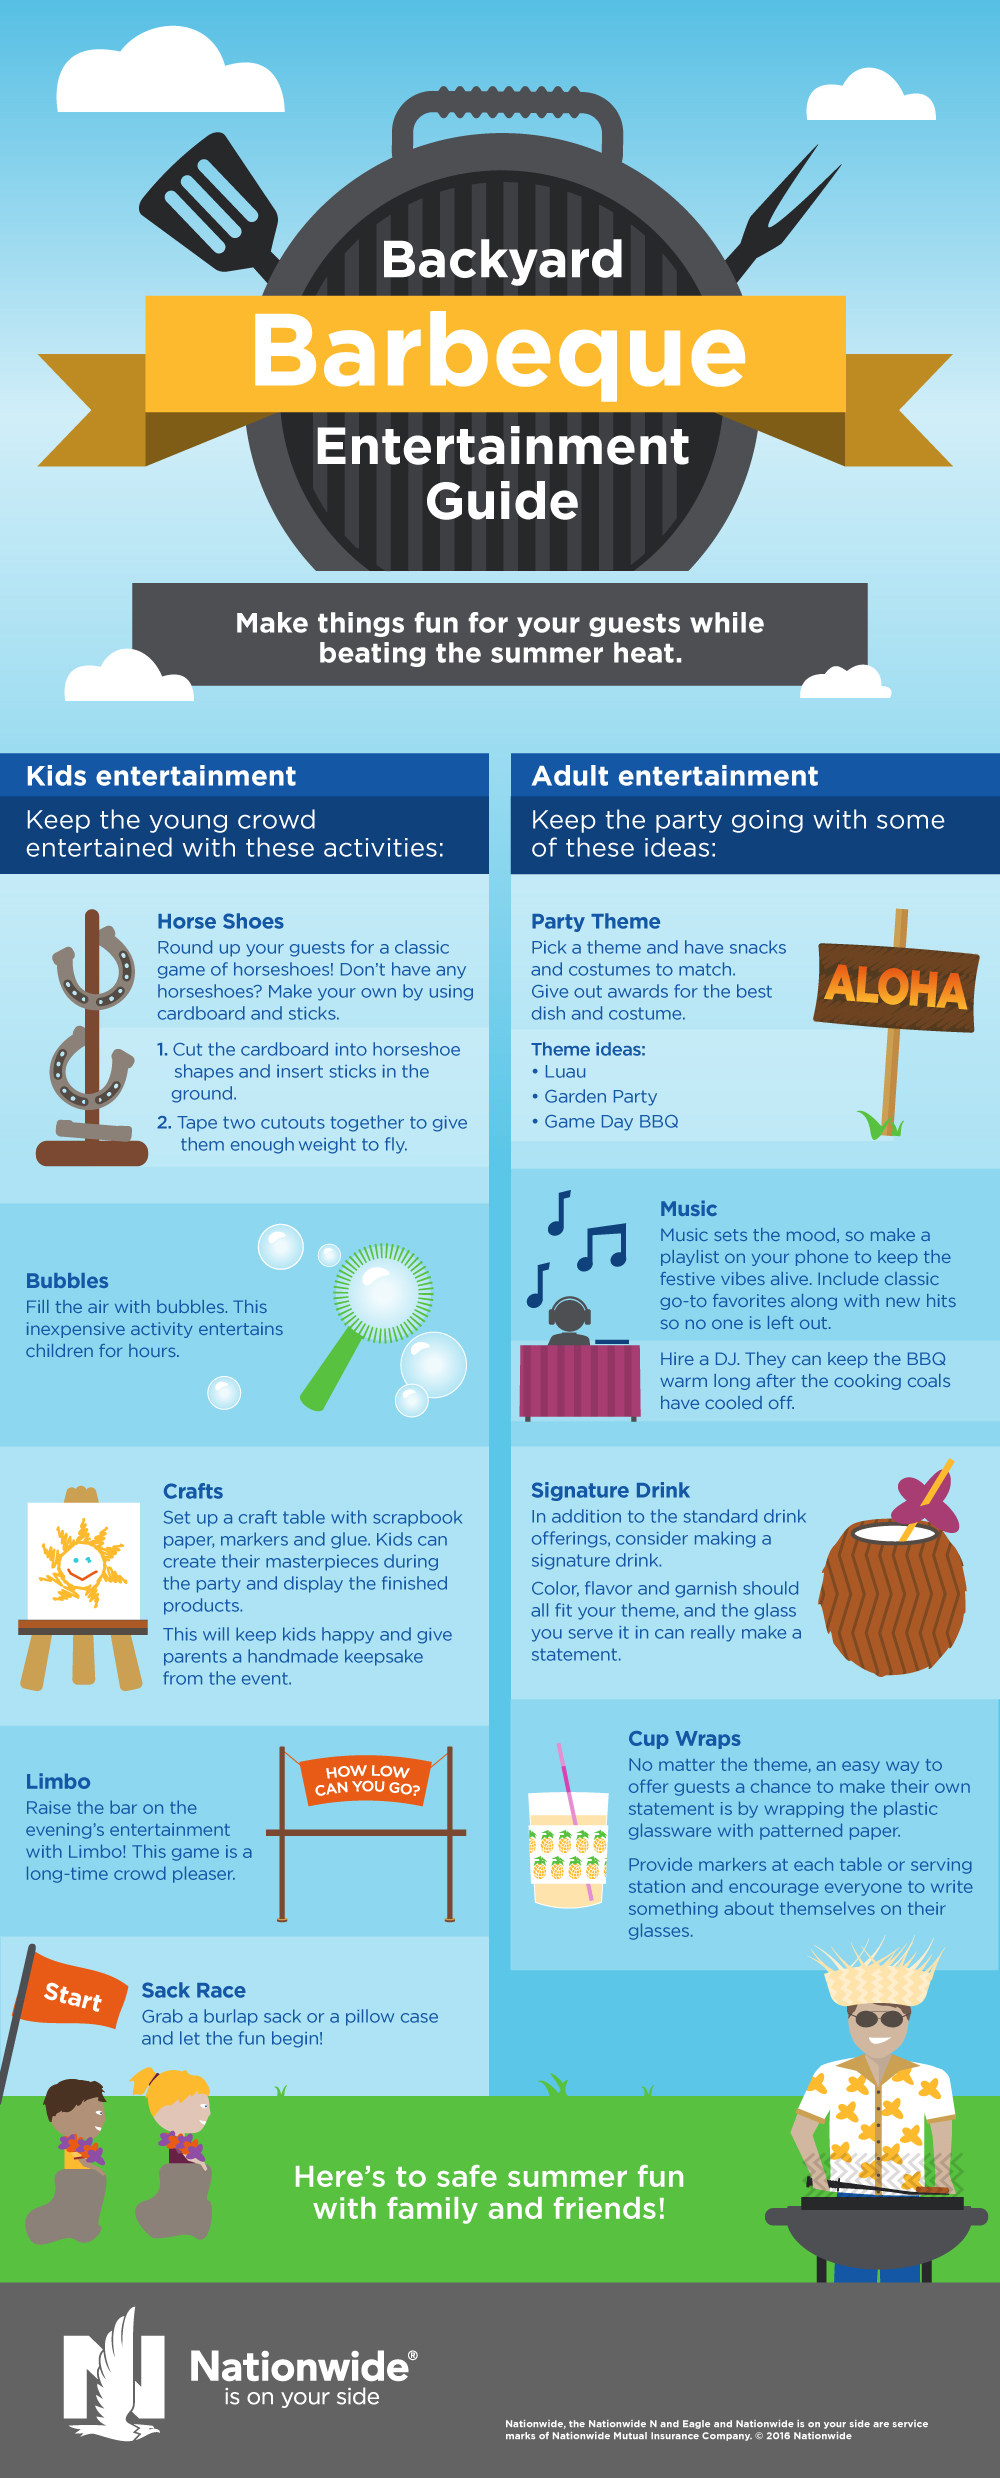 Backyard BBQ Party Ideas Infographic